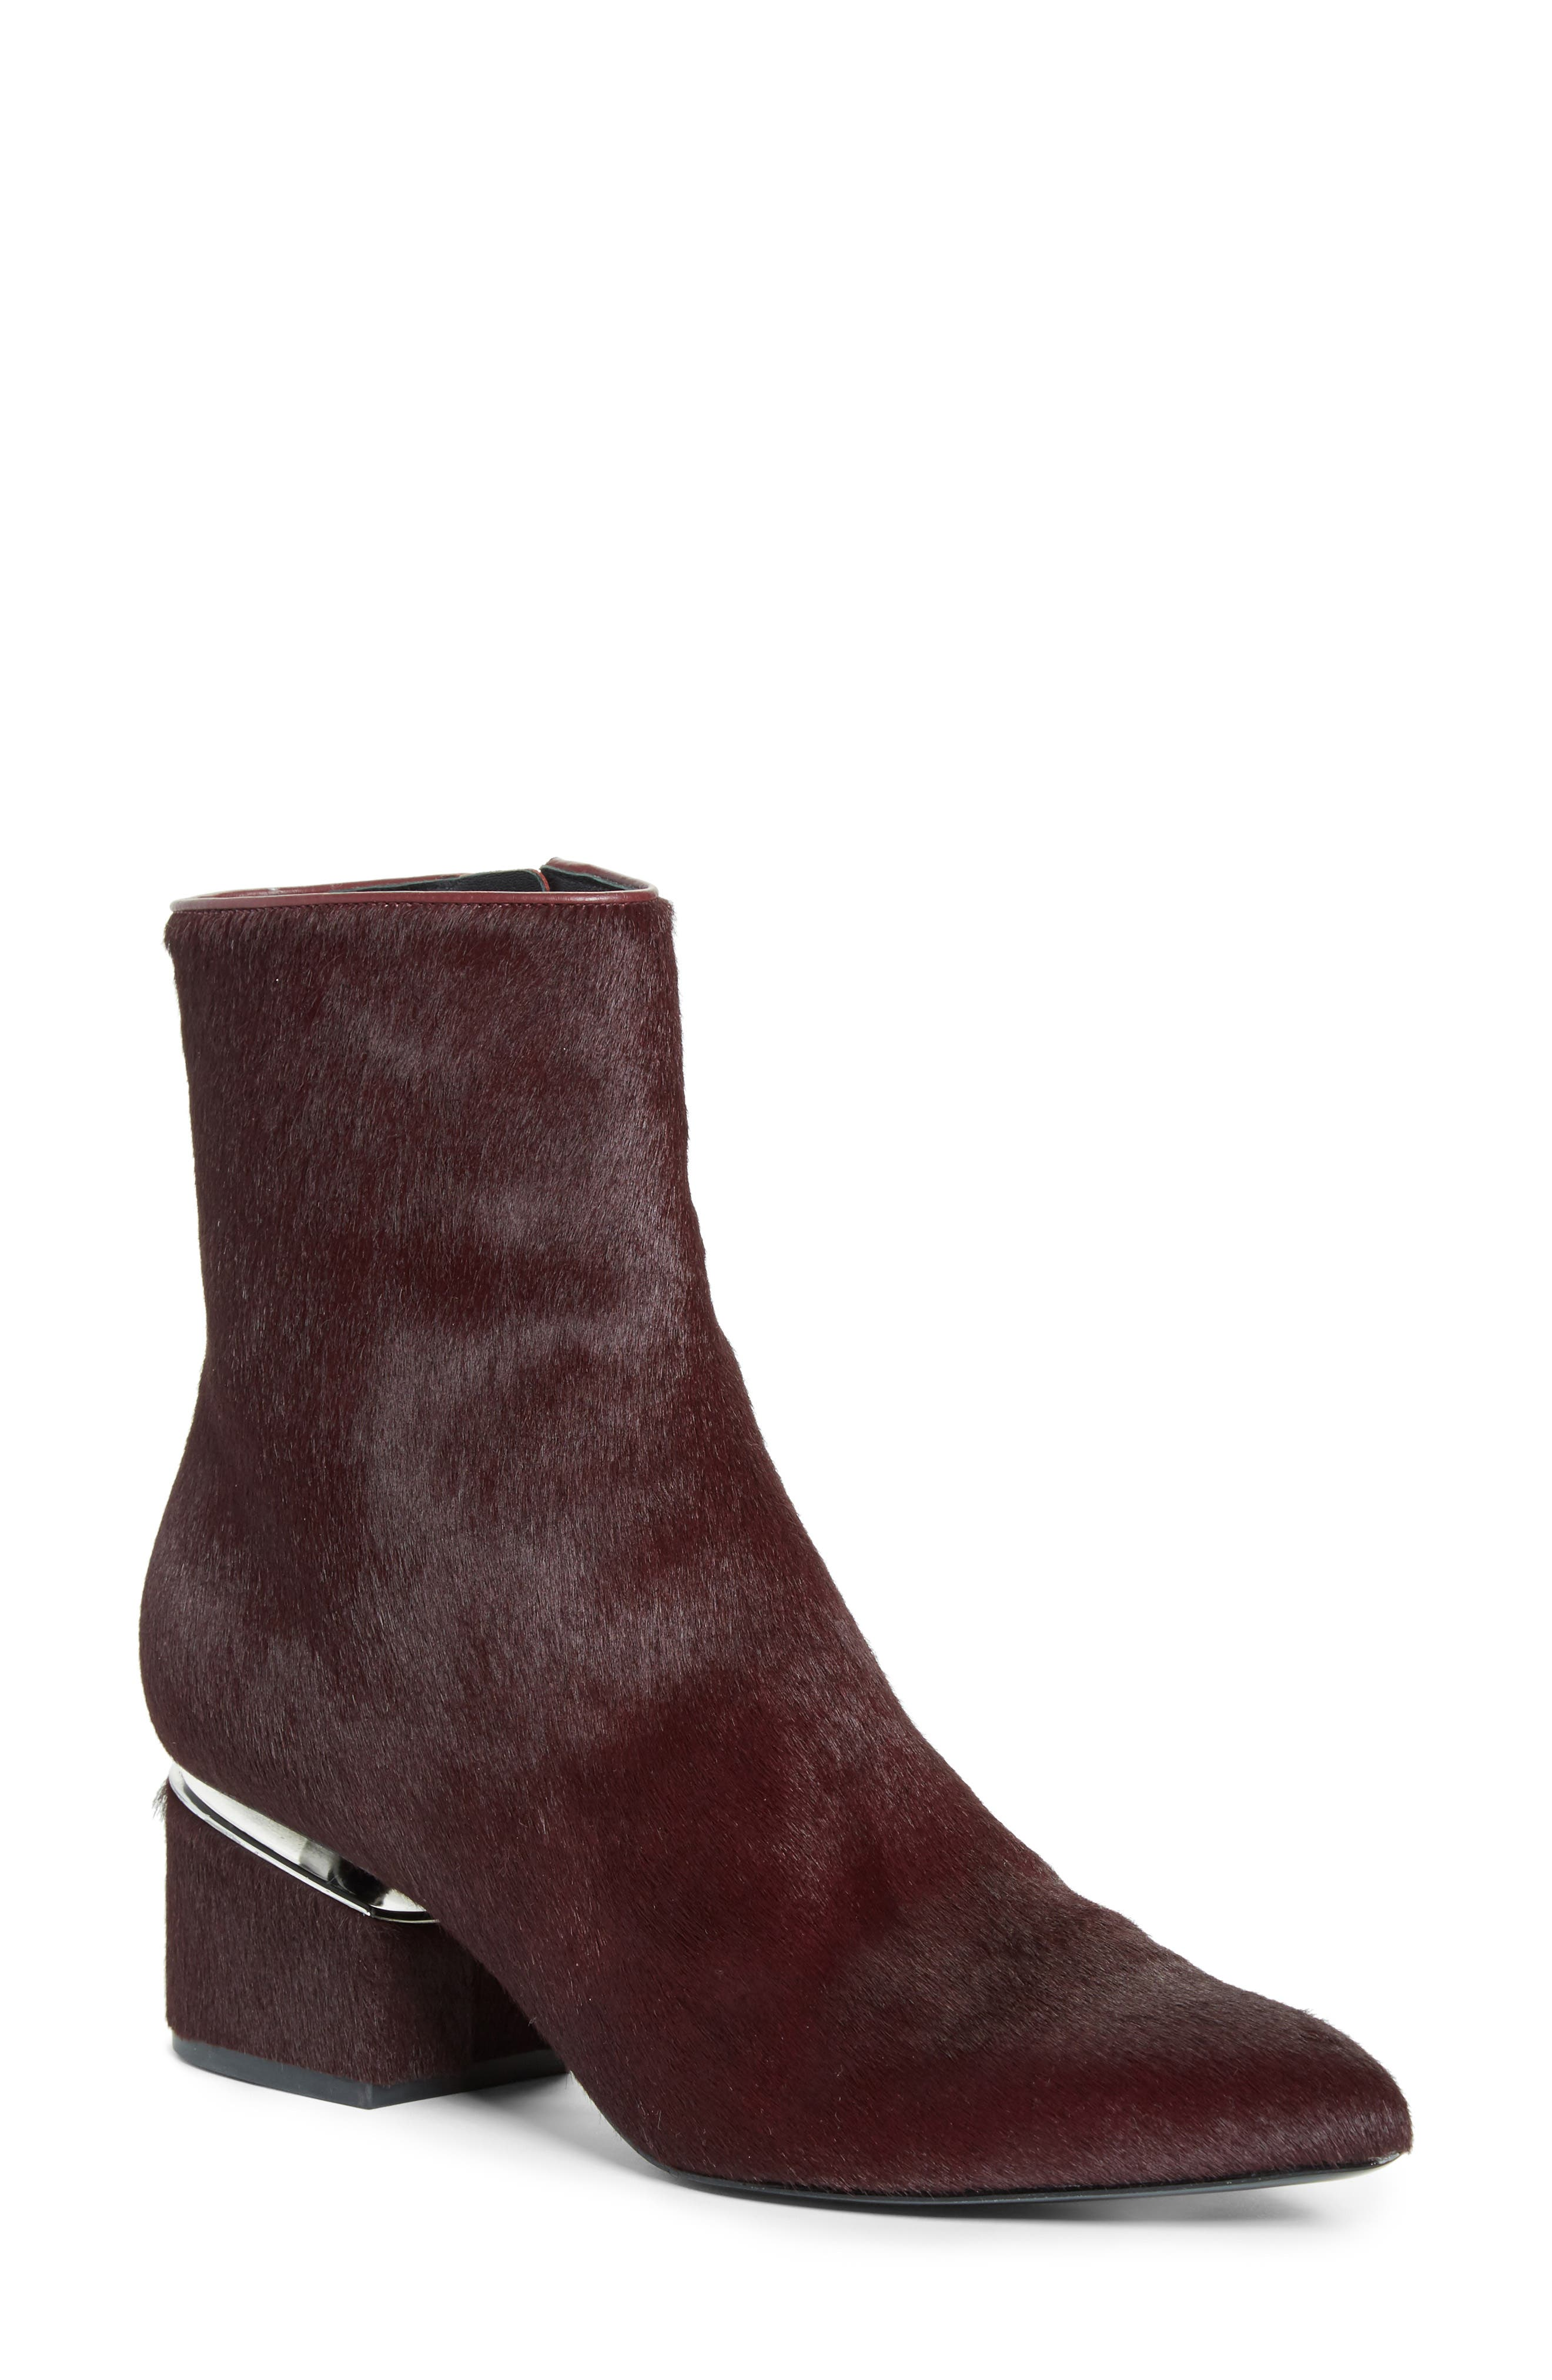 Jude Genuine Calf Hair Bootie,                         Main,                         color, Burgundy Leather